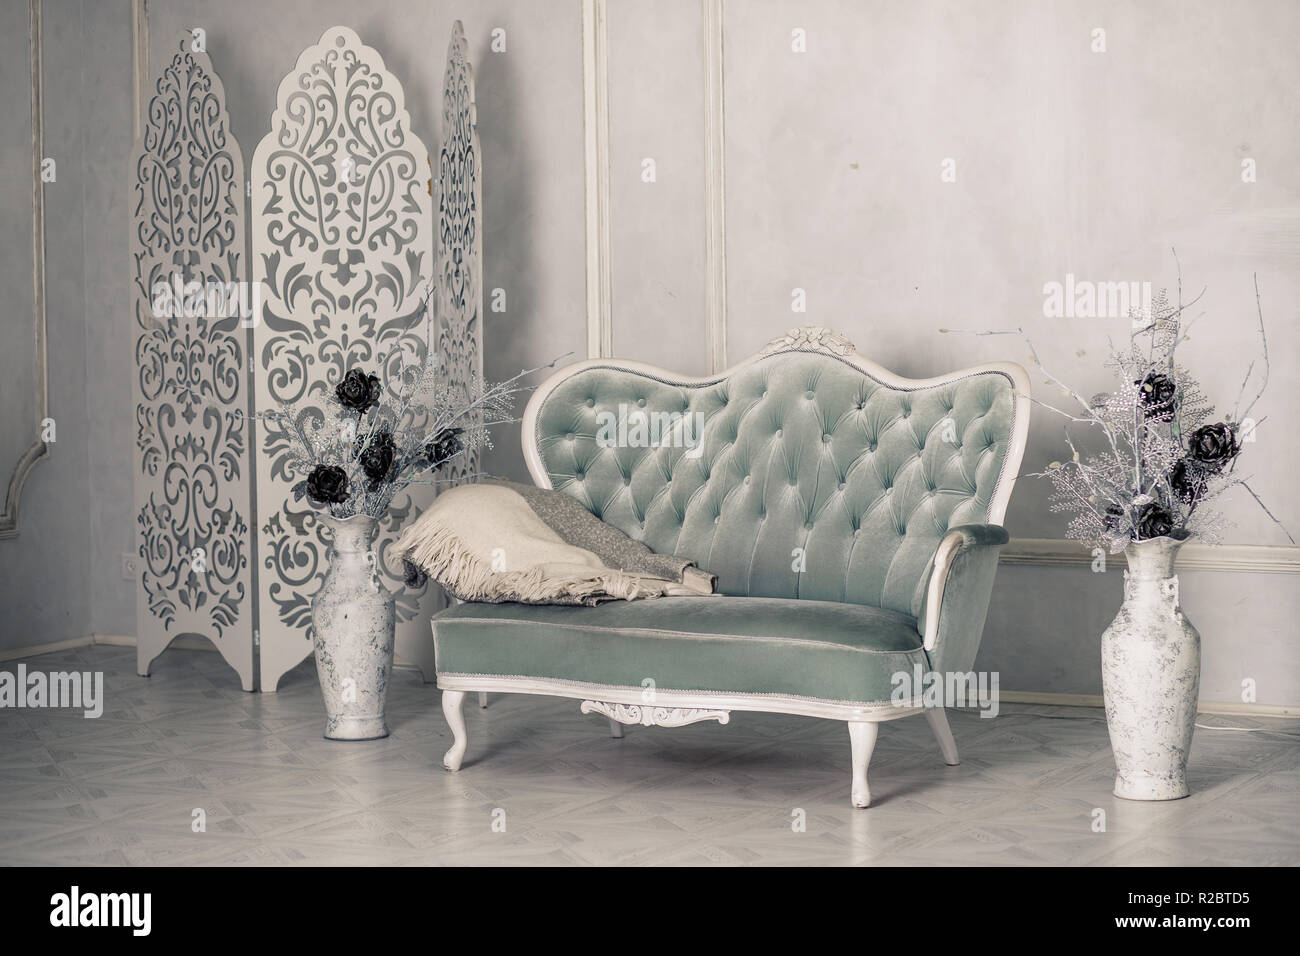 living room floor vases decorative things for interior with vintage furniture retro beautiful grey sofa white livingroom large antique flowers pillows and blanket